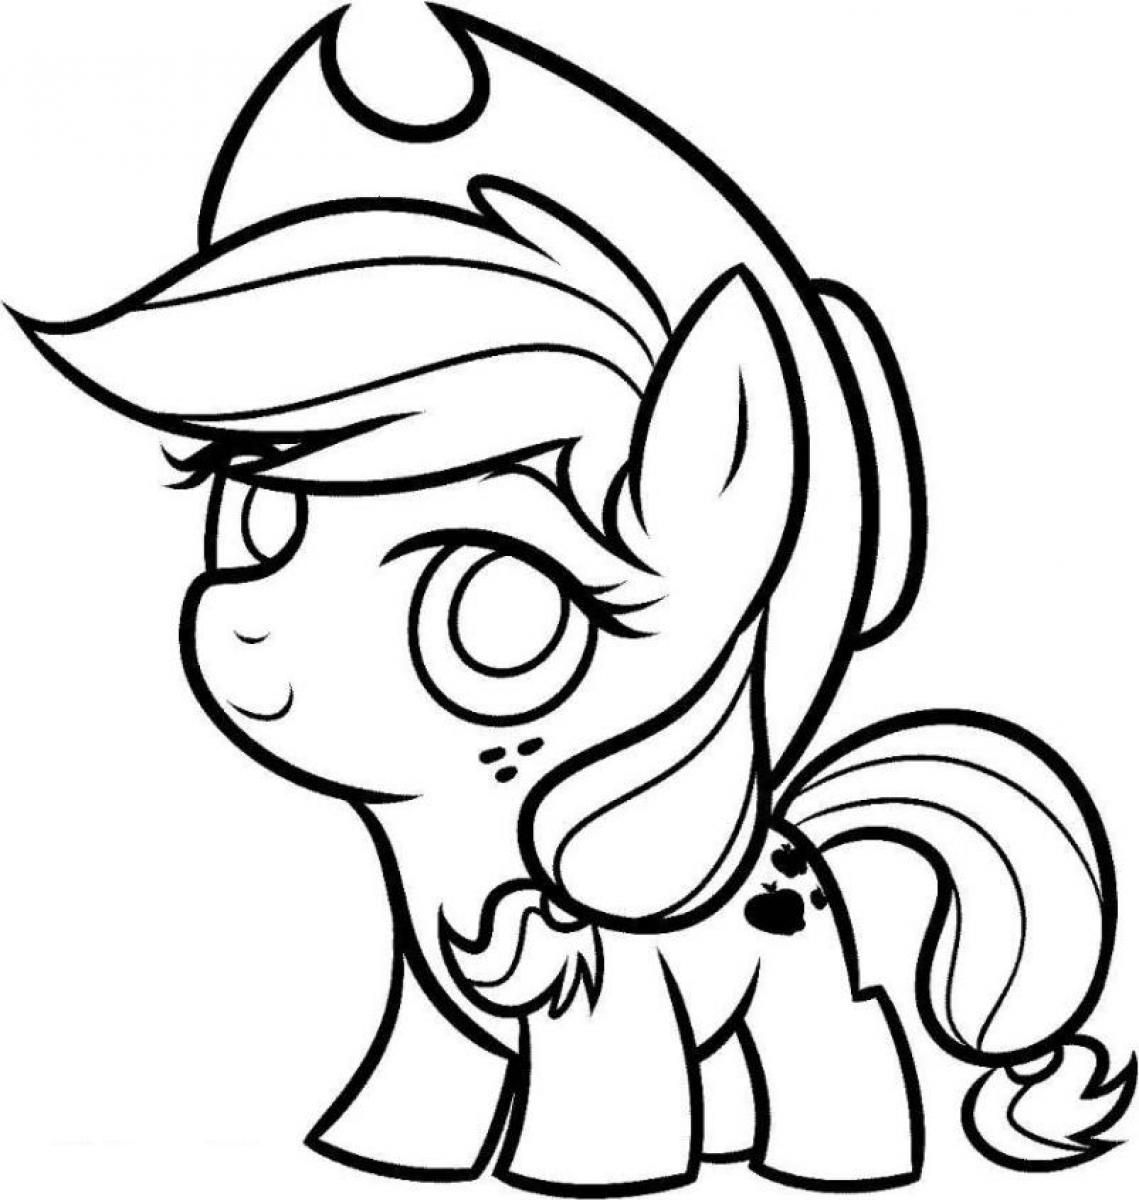 Adult Cute Baby My Little Pony Coloring Pages Gallery Images top 1000 images about my little pony on pinterest princess cadence coloring pages and cute characters images